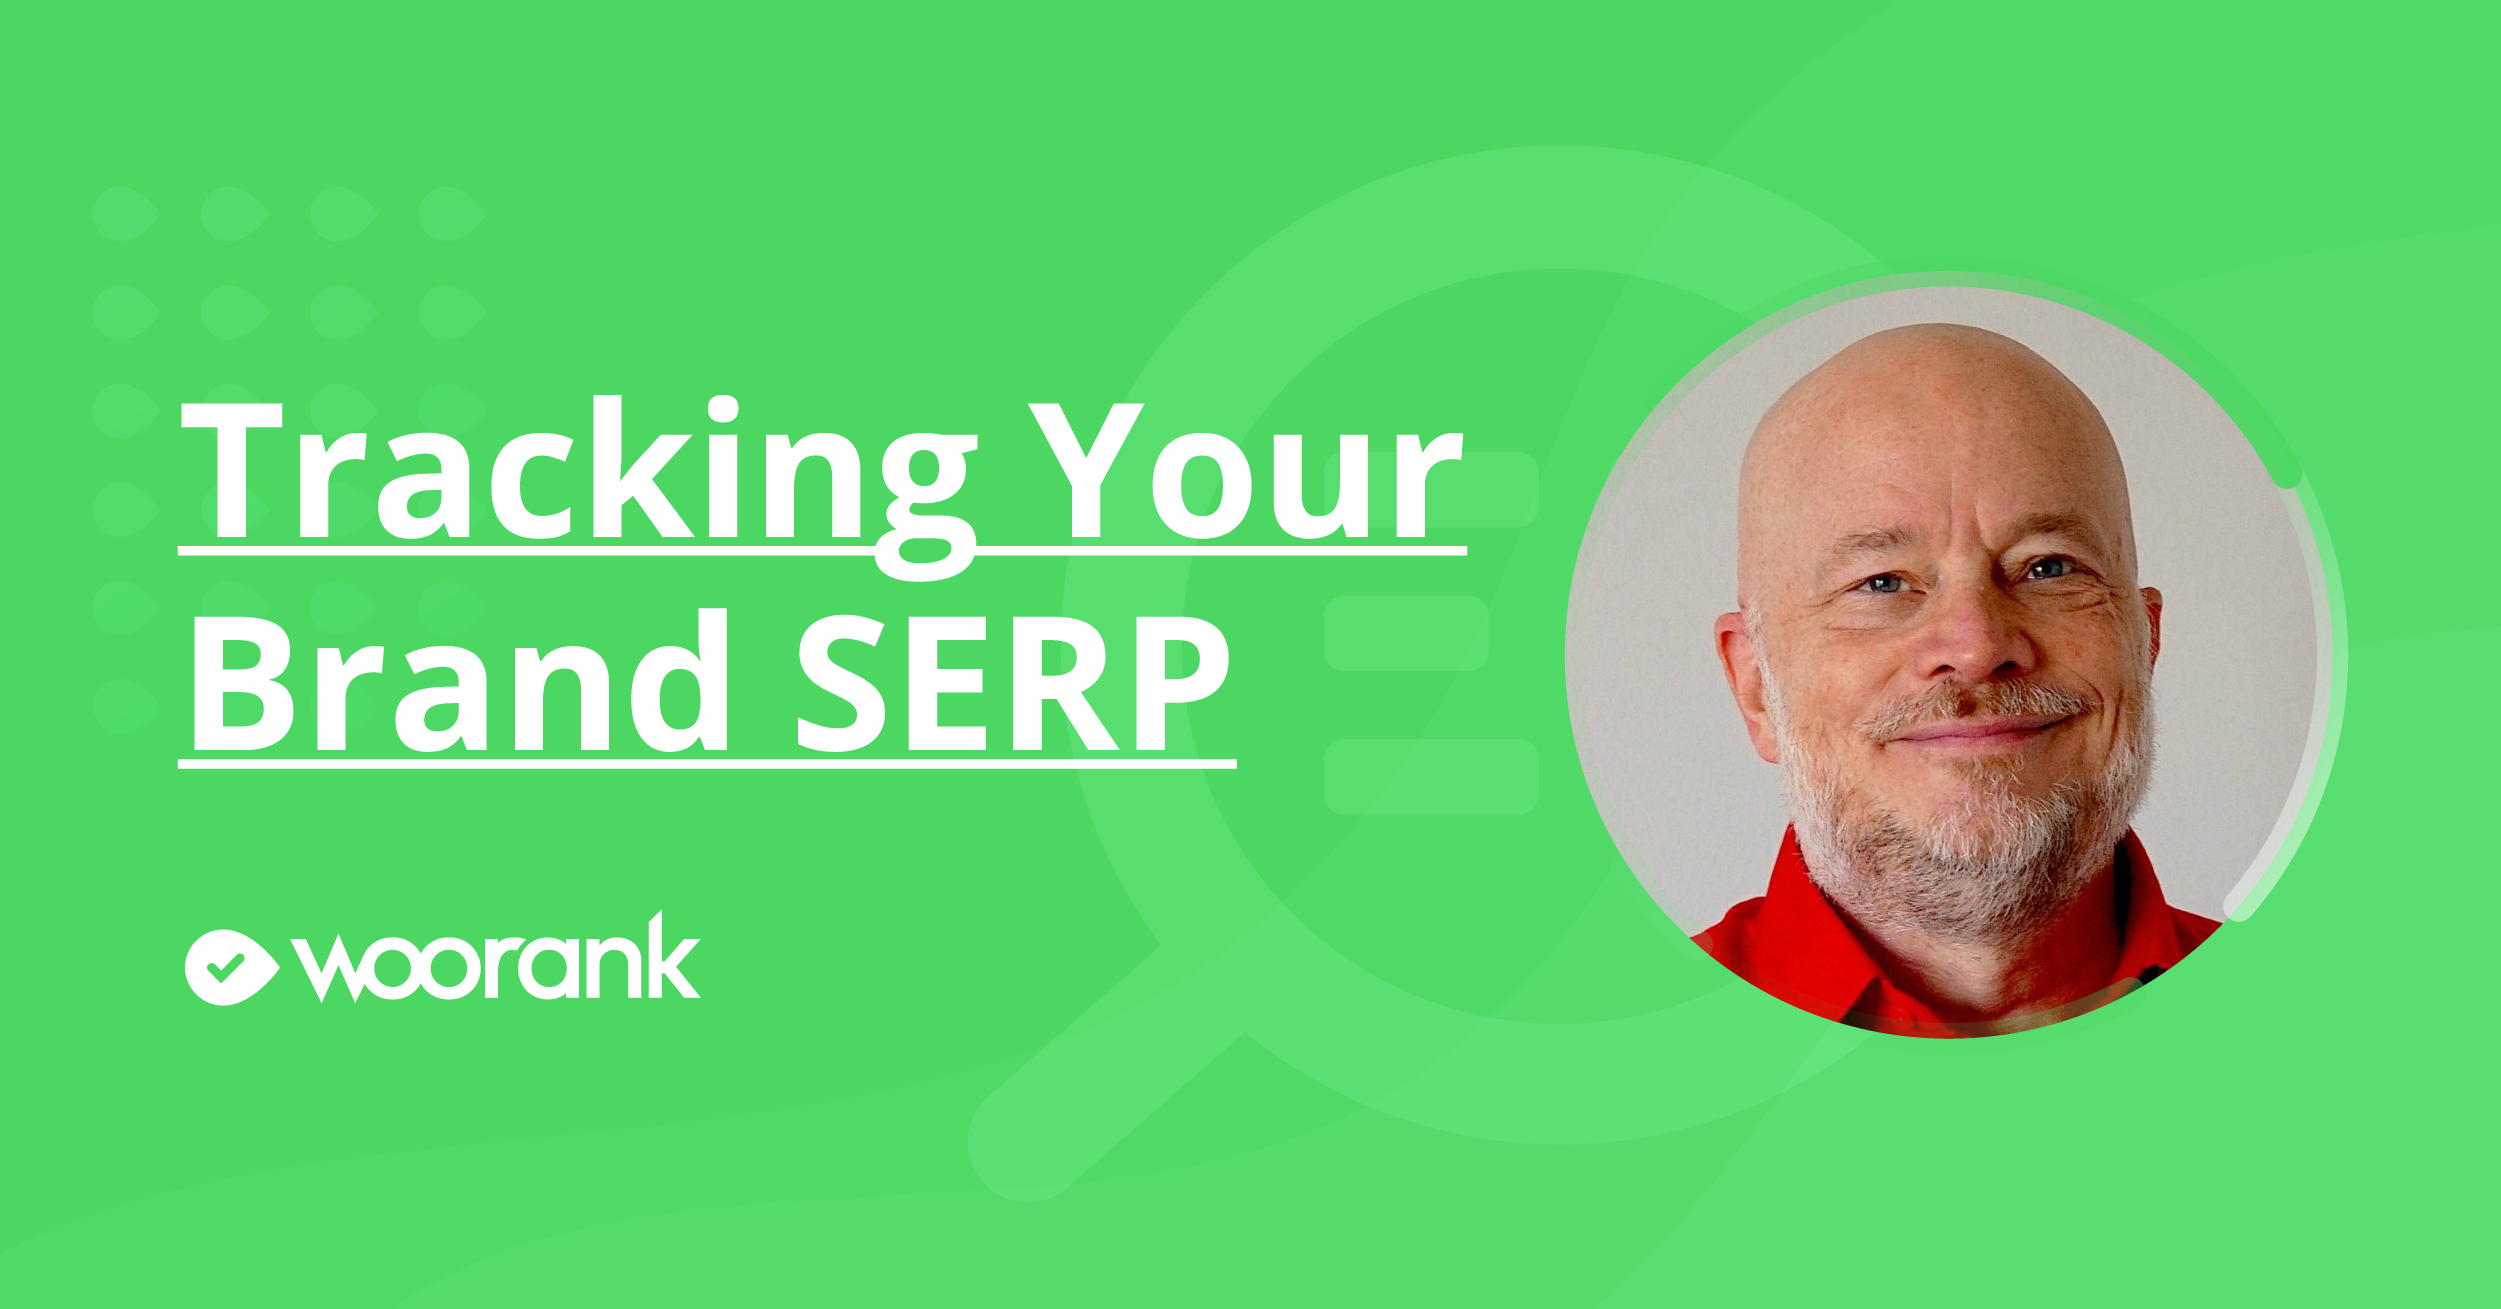 Tracking Your Brand SERP